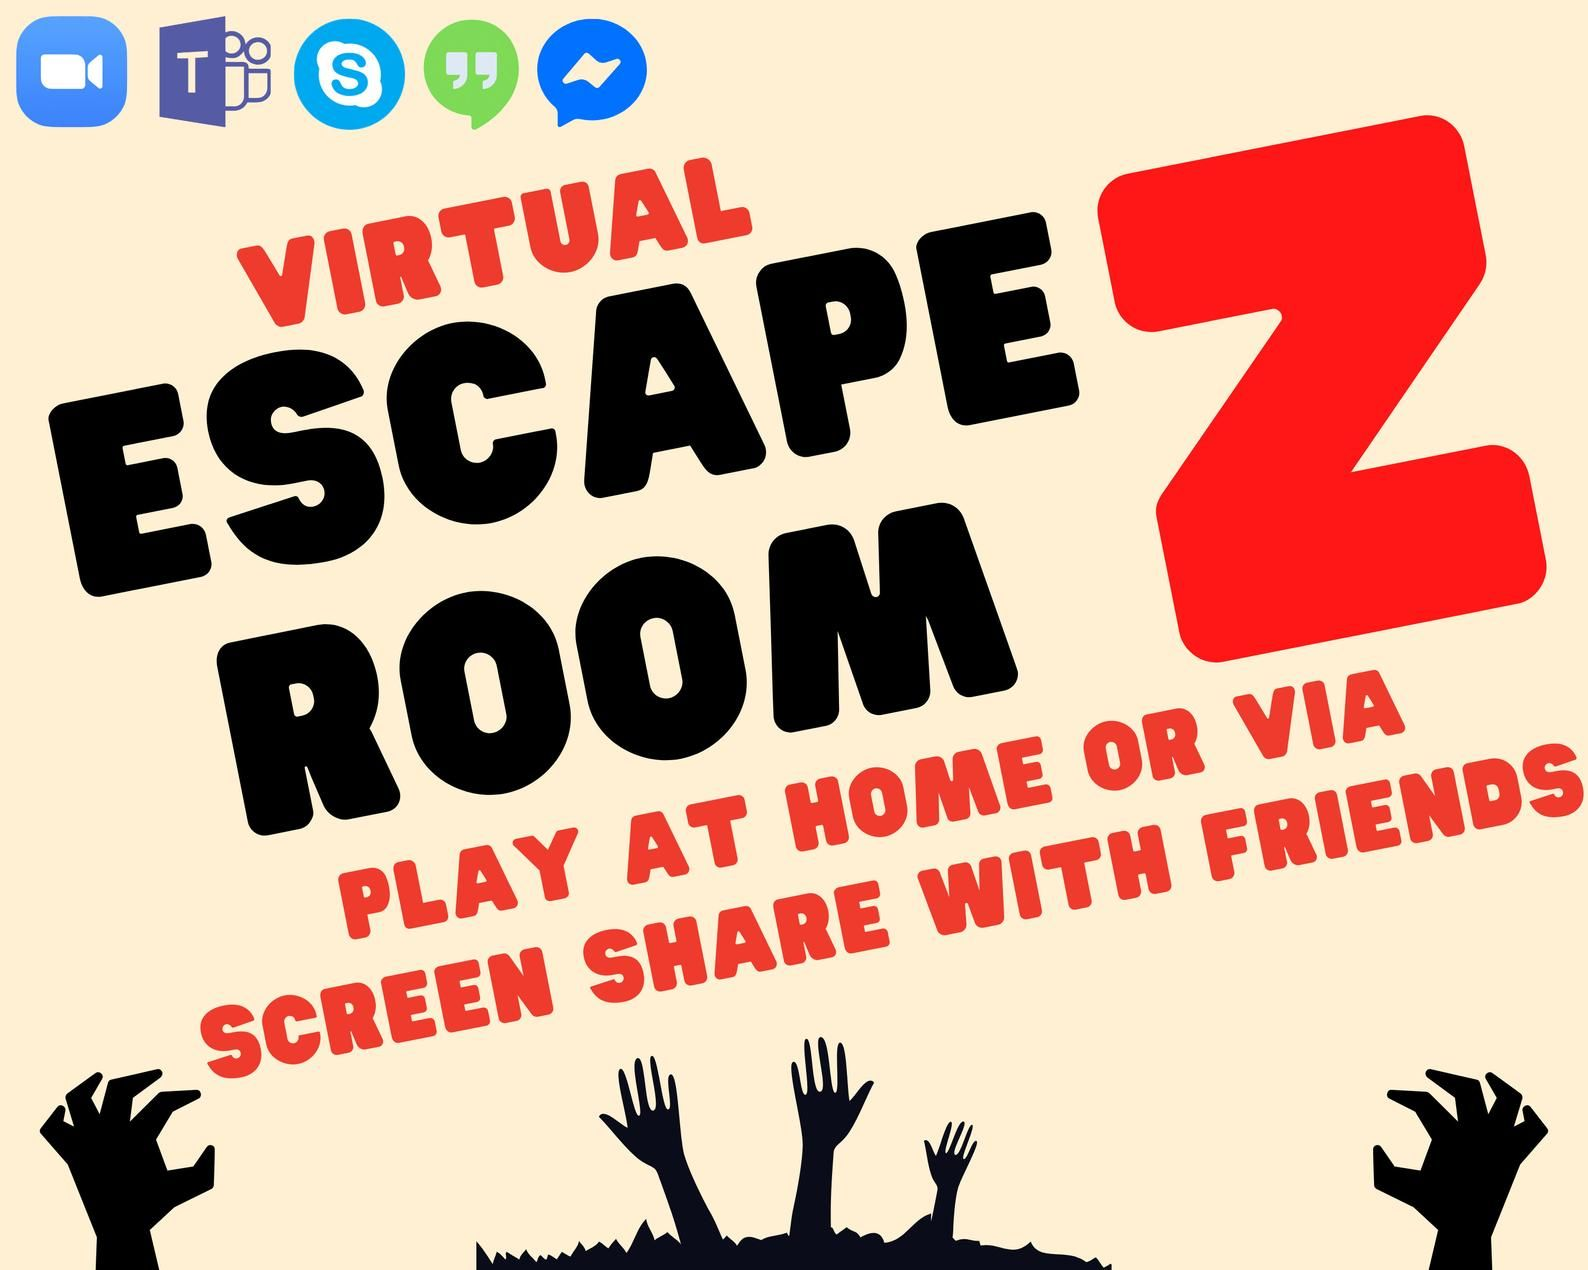 Virtual Escape Room Games Night Lockdown Zoom Screen